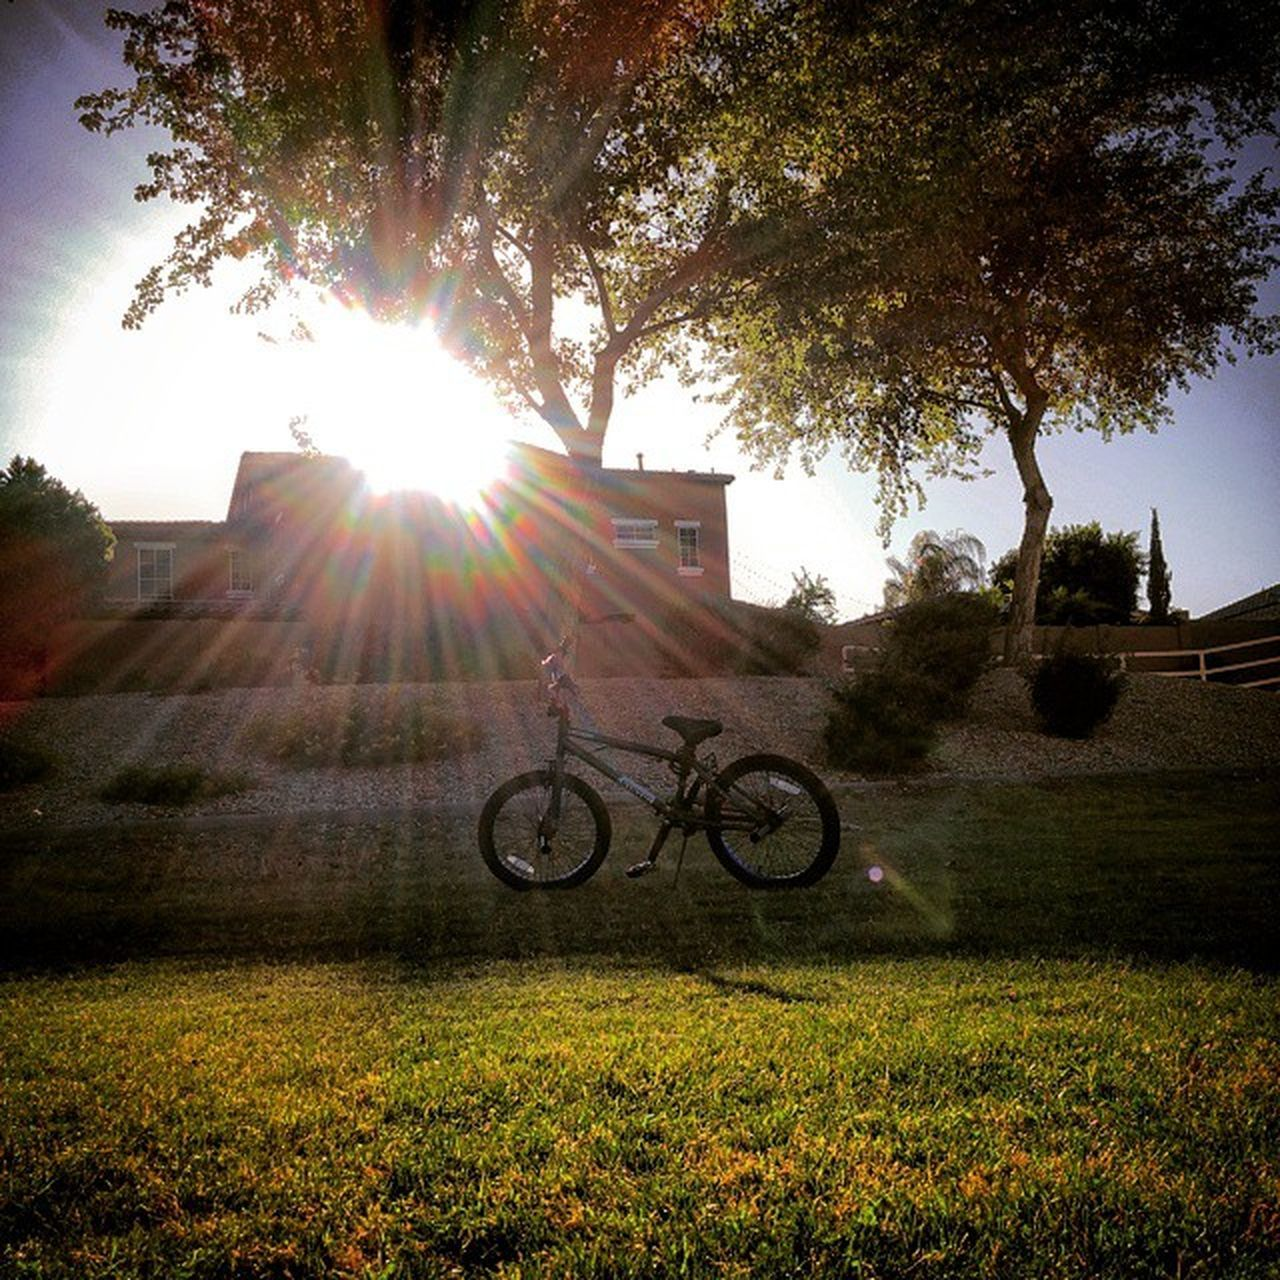 sunbeam, tree, lens flare, grass, bicycle, sun, sunlight, transportation, day, field, outdoors, nature, growth, sky, no people, building exterior, beauty in nature